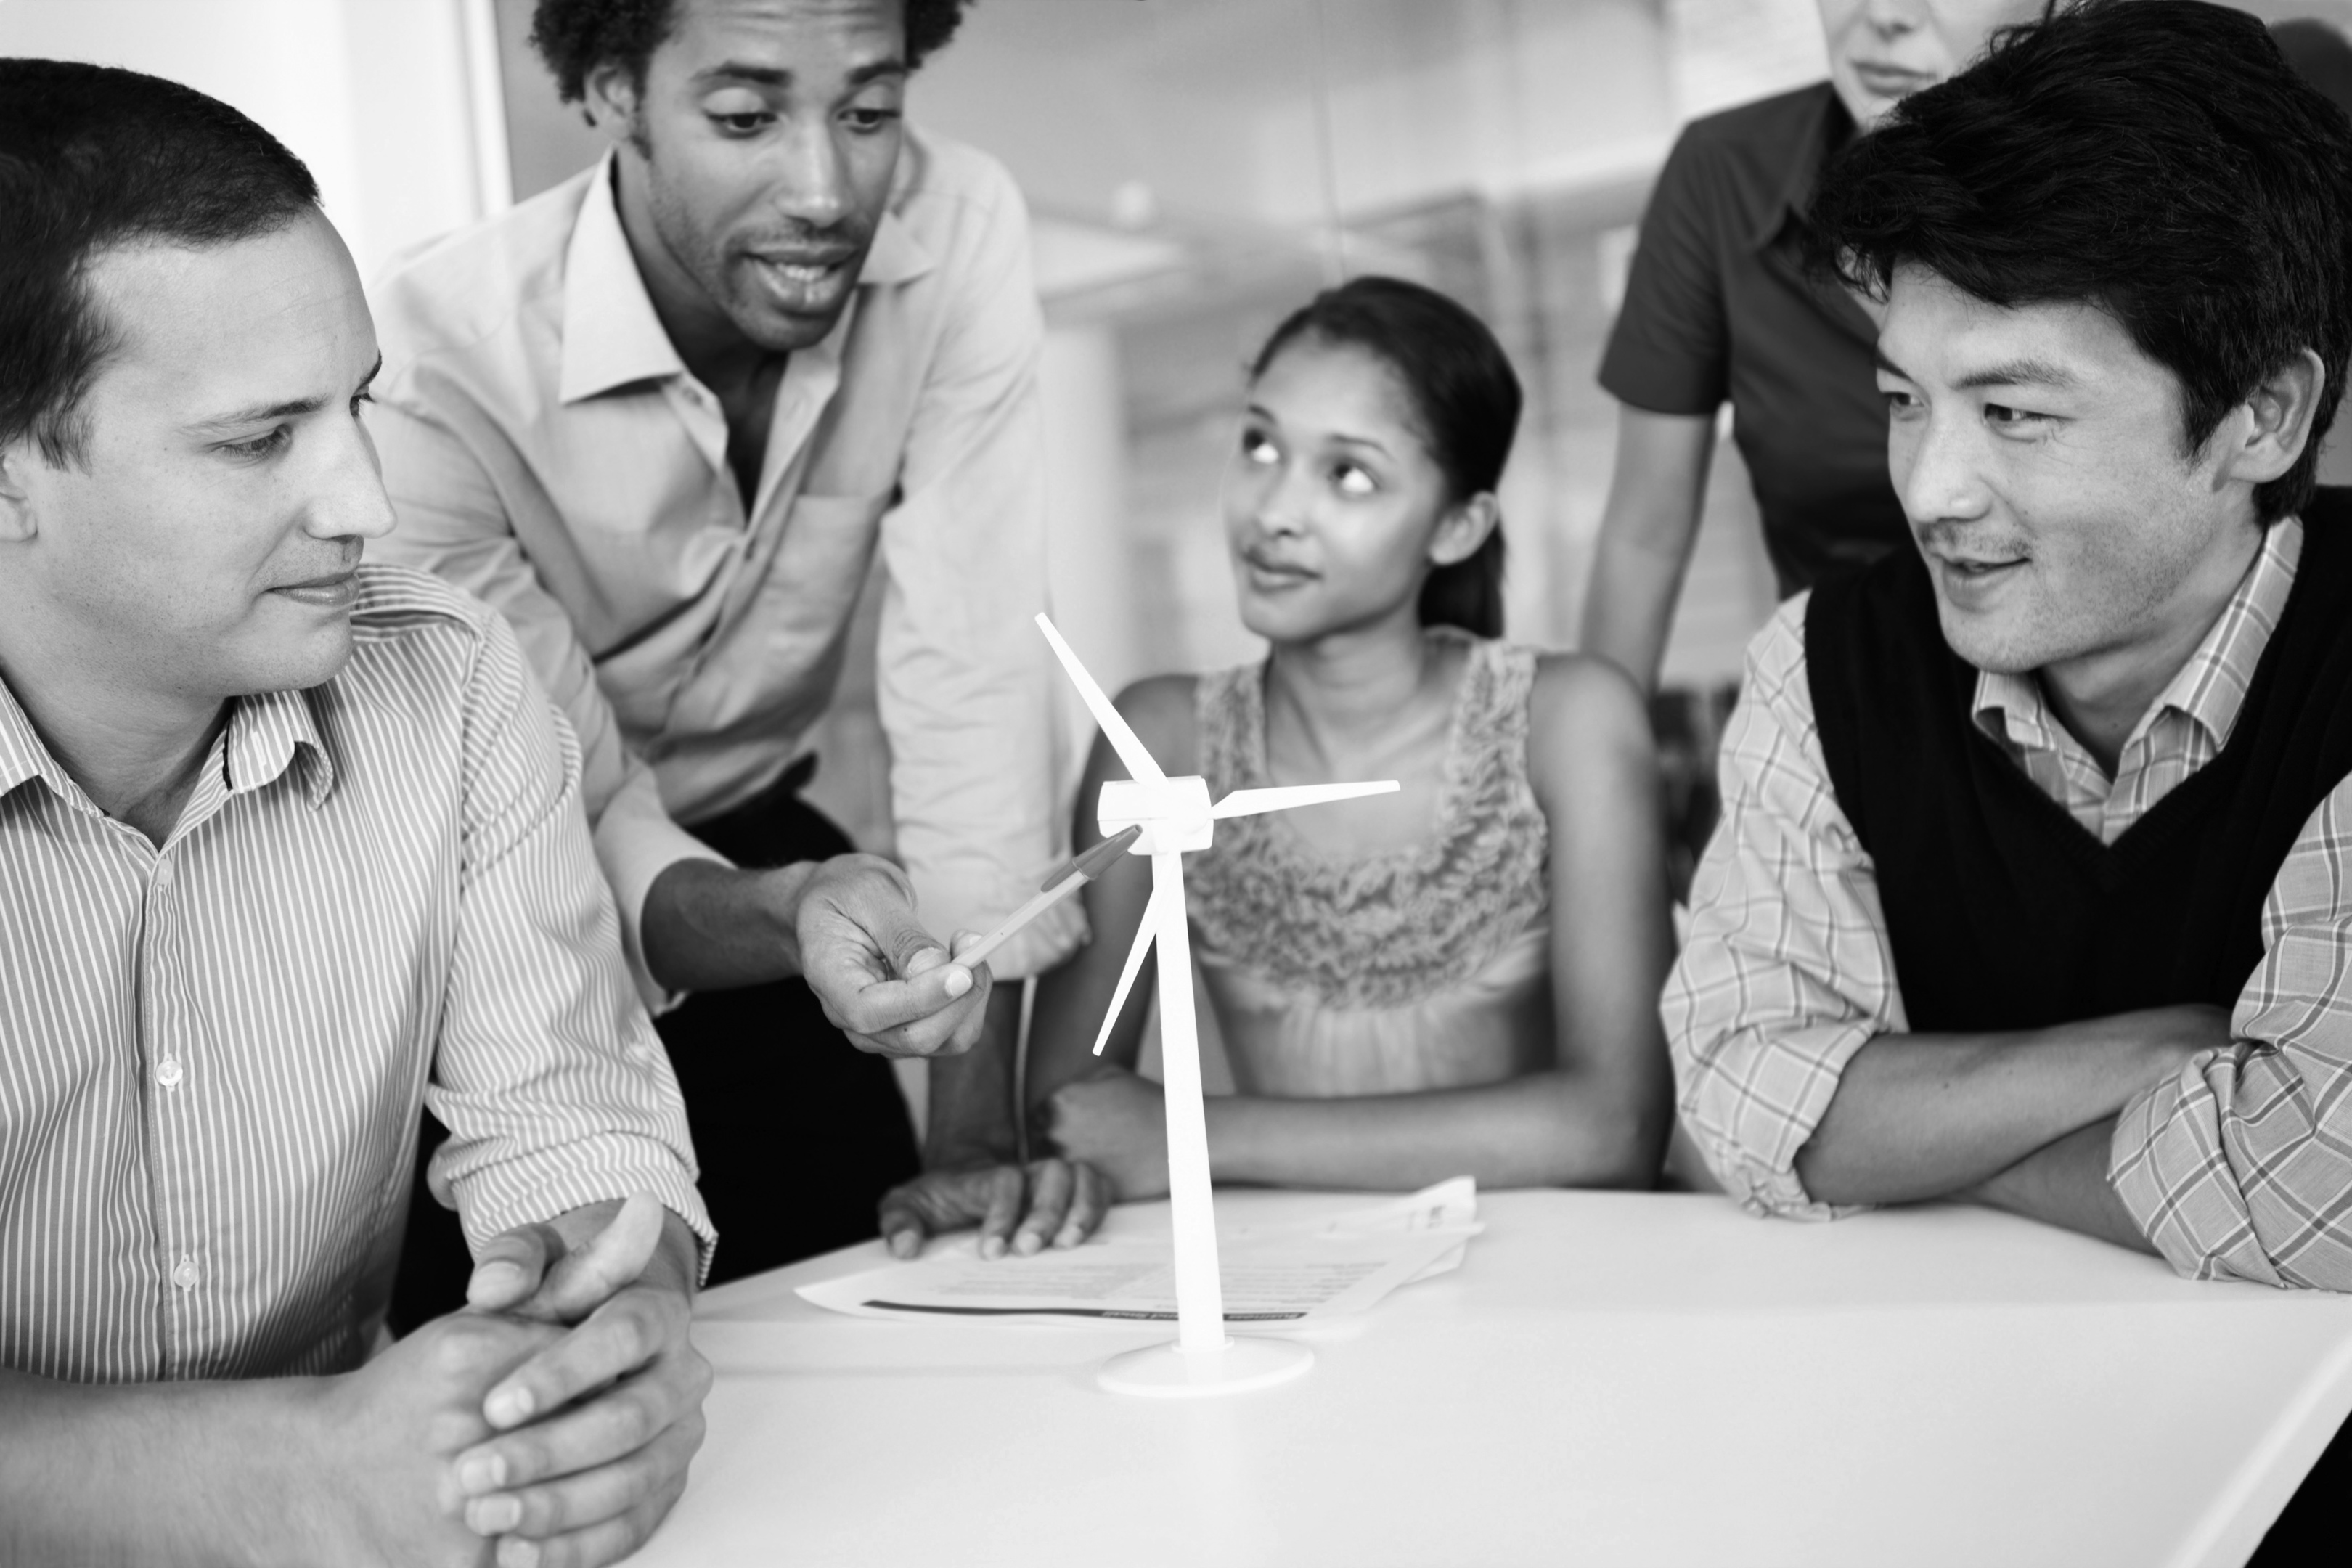 A team of engineers perfecting the design of their wind turbine